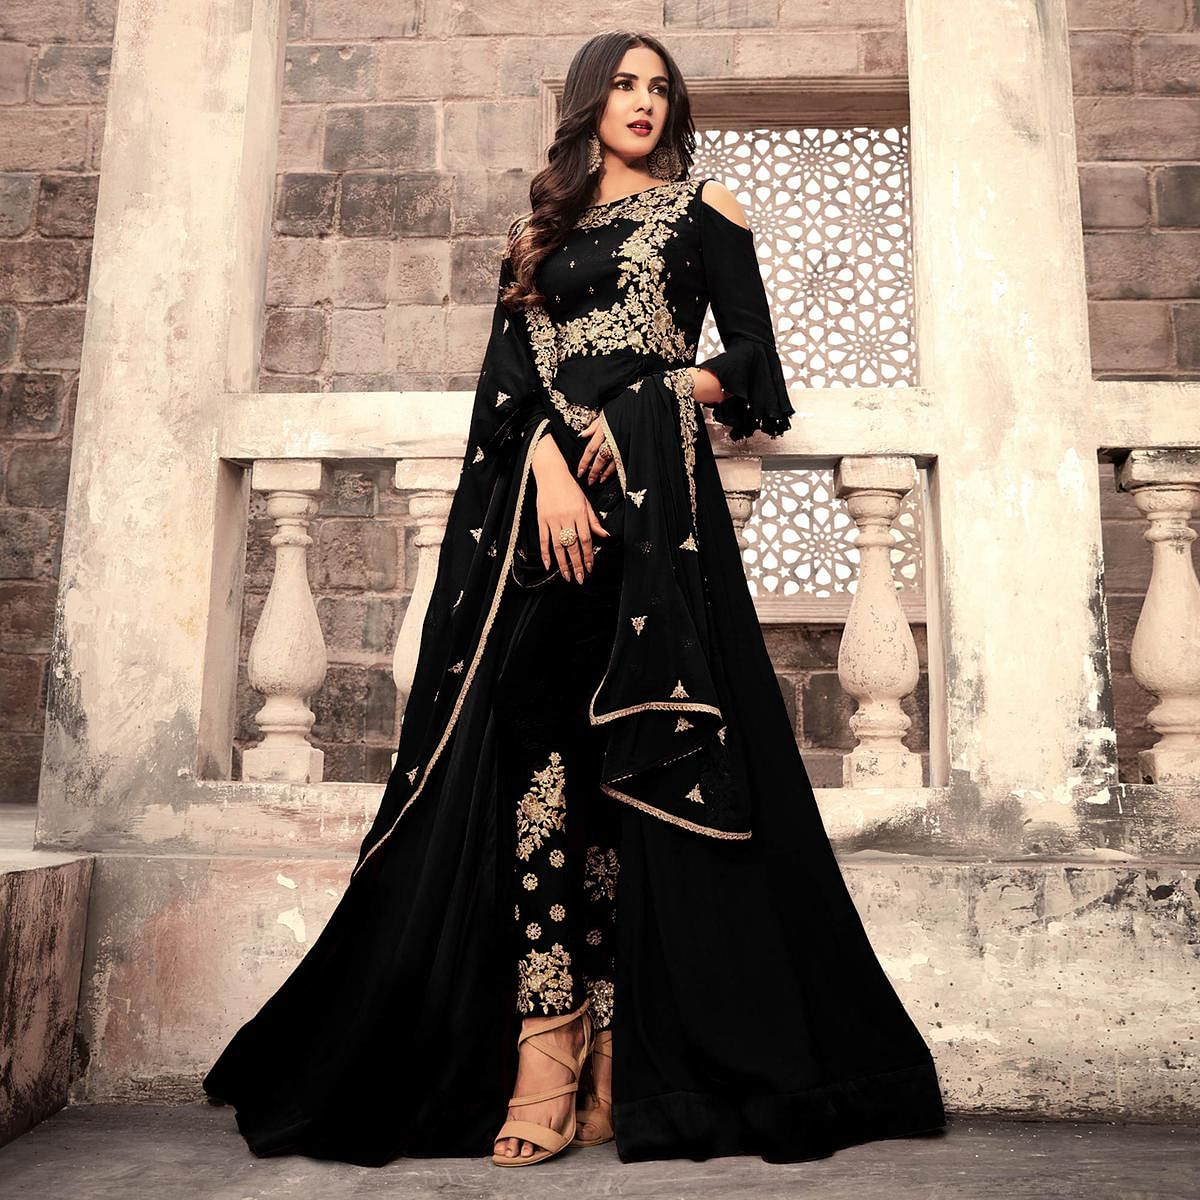 df3896b065 Buy Ravishing Black Colored Designer Partywear Embroidered Georgette  Anarkali Suit Online India, Best Prices, Reviews - Peachmode